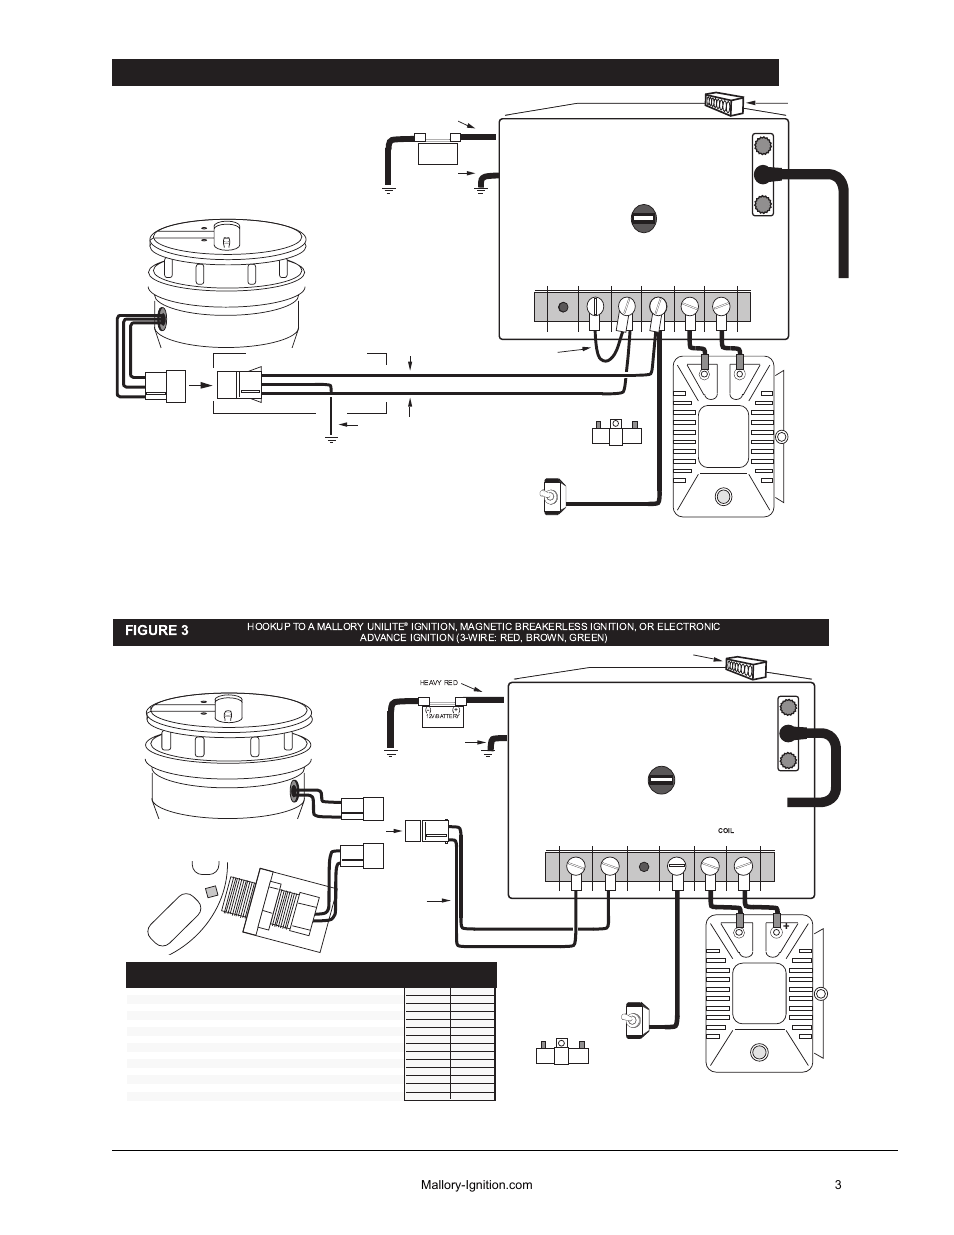 hight resolution of mallory hyfire ignition wiring diagram detailed schematics diagram rh antonartgallery com